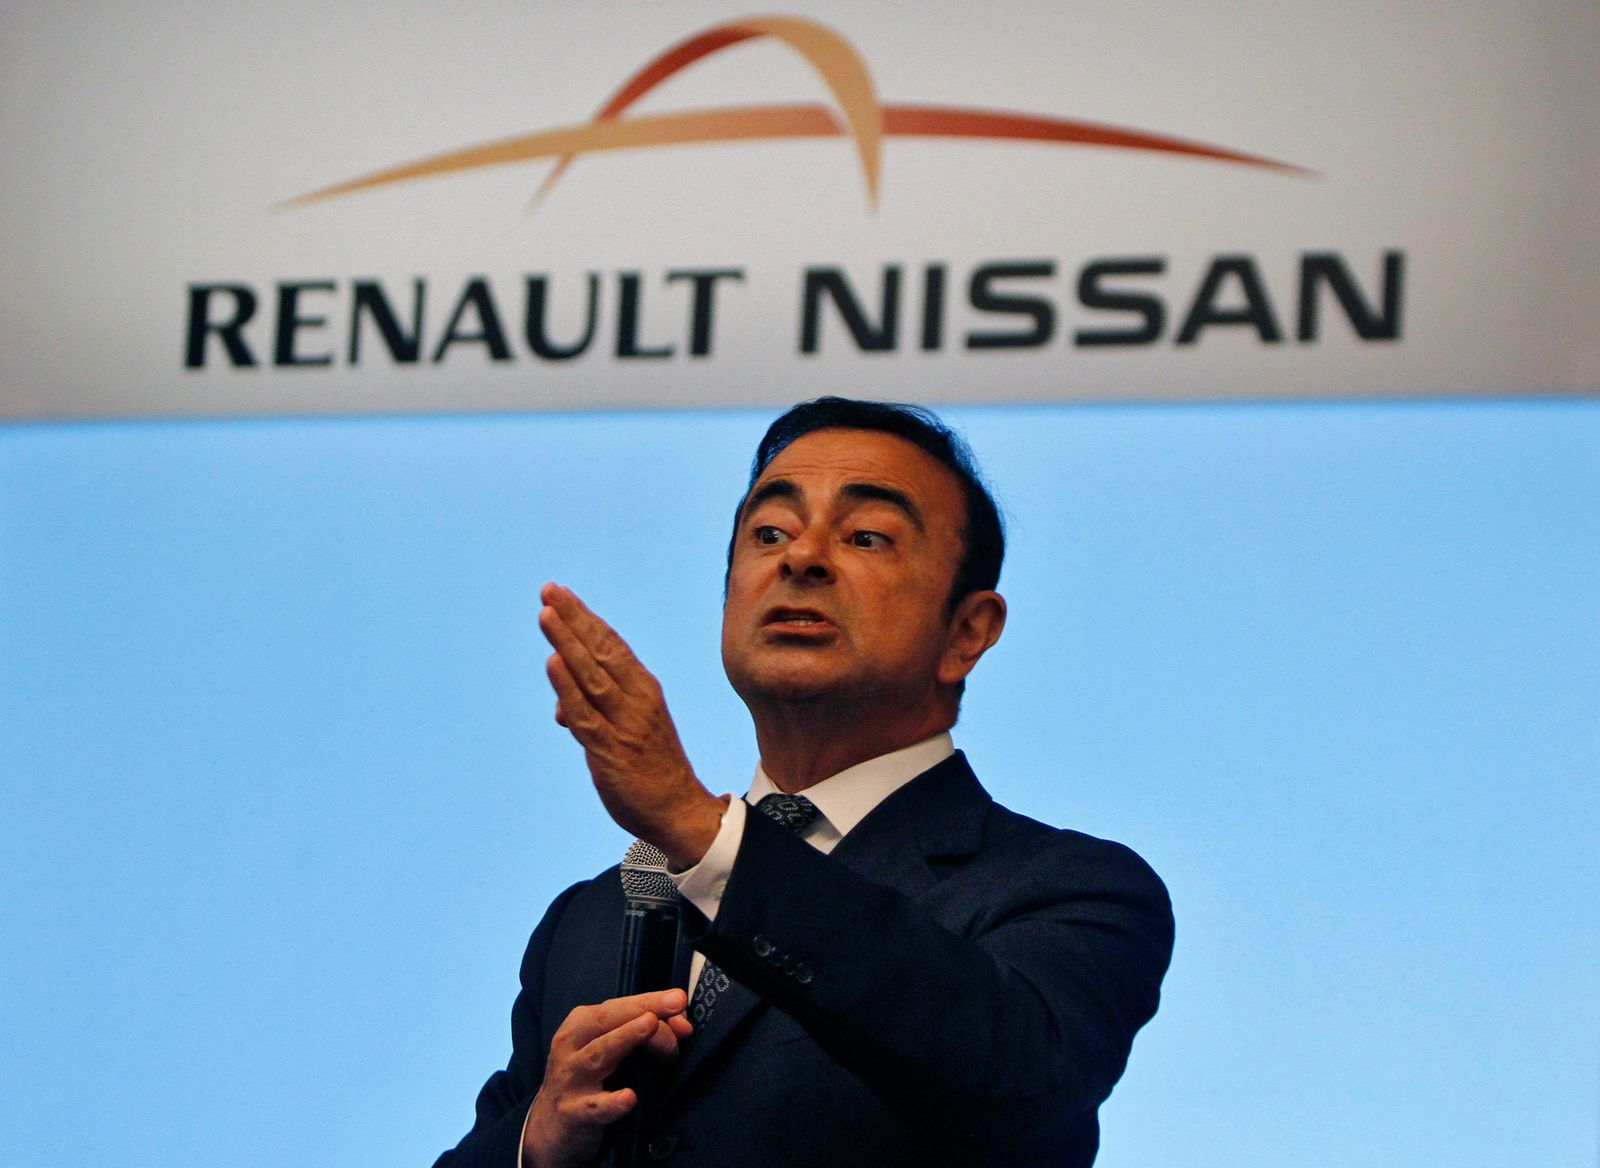 Carlos Ghosn / Nissan